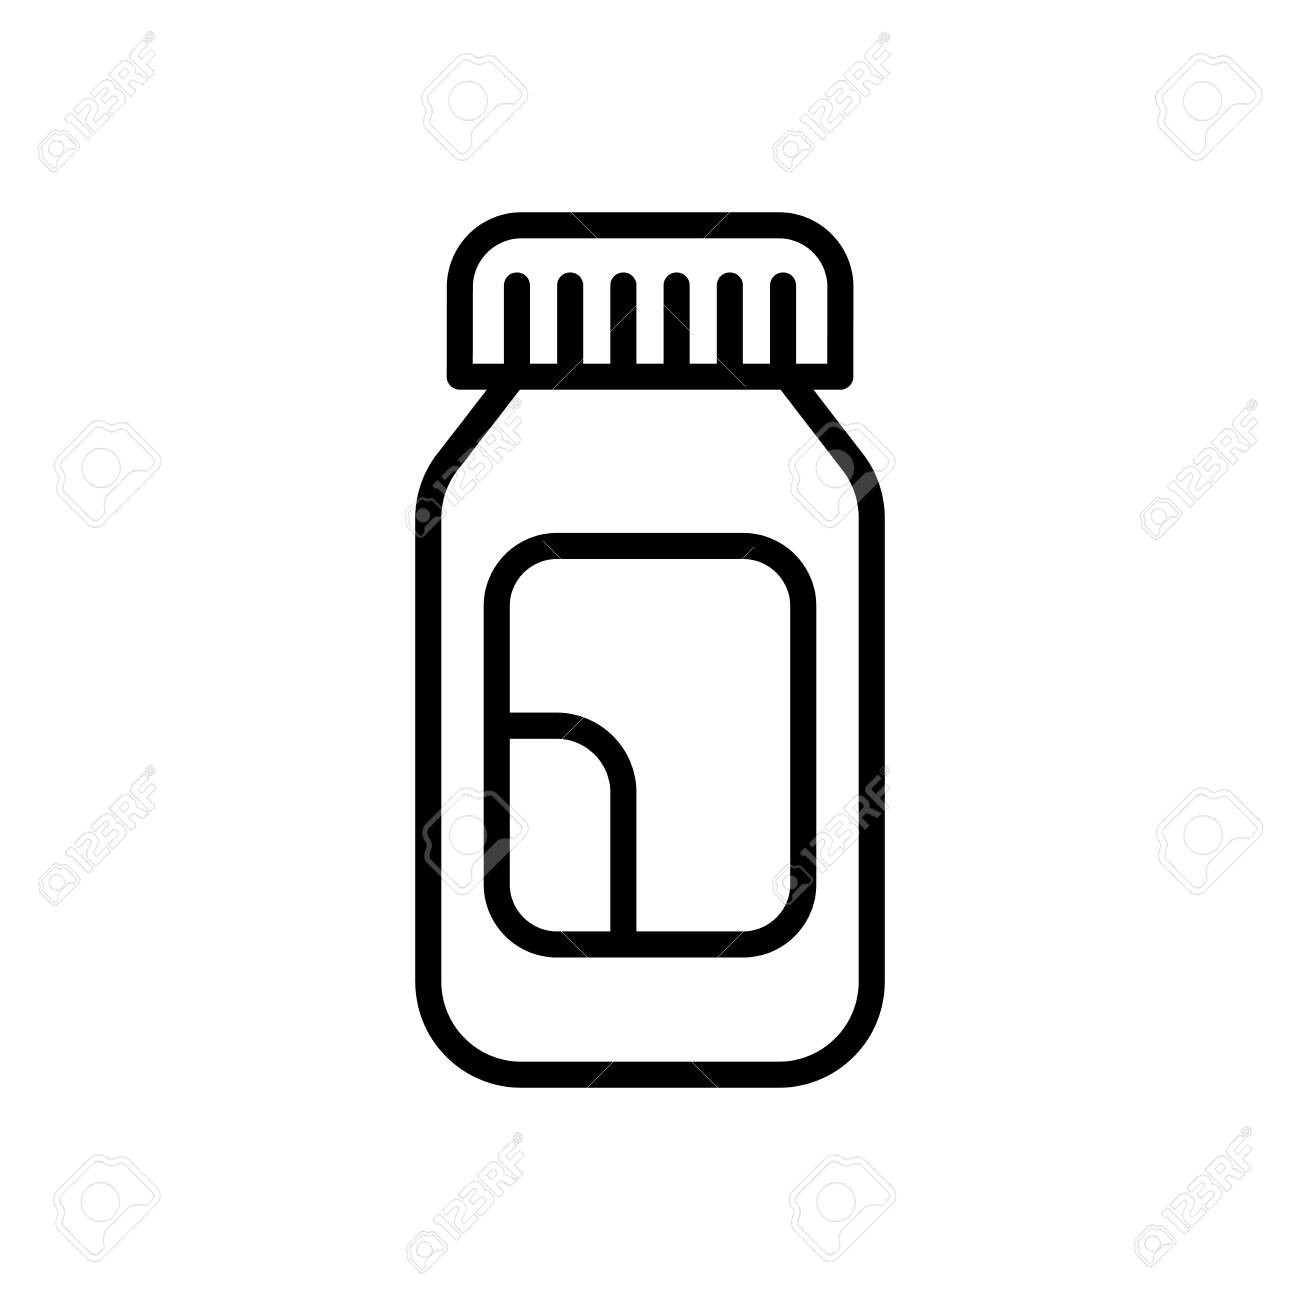 drugs icon vector isolated on white background drugs transparent royalty free cliparts vectors and stock illustration image 107132422 drugs icon vector isolated on white background drugs transparent